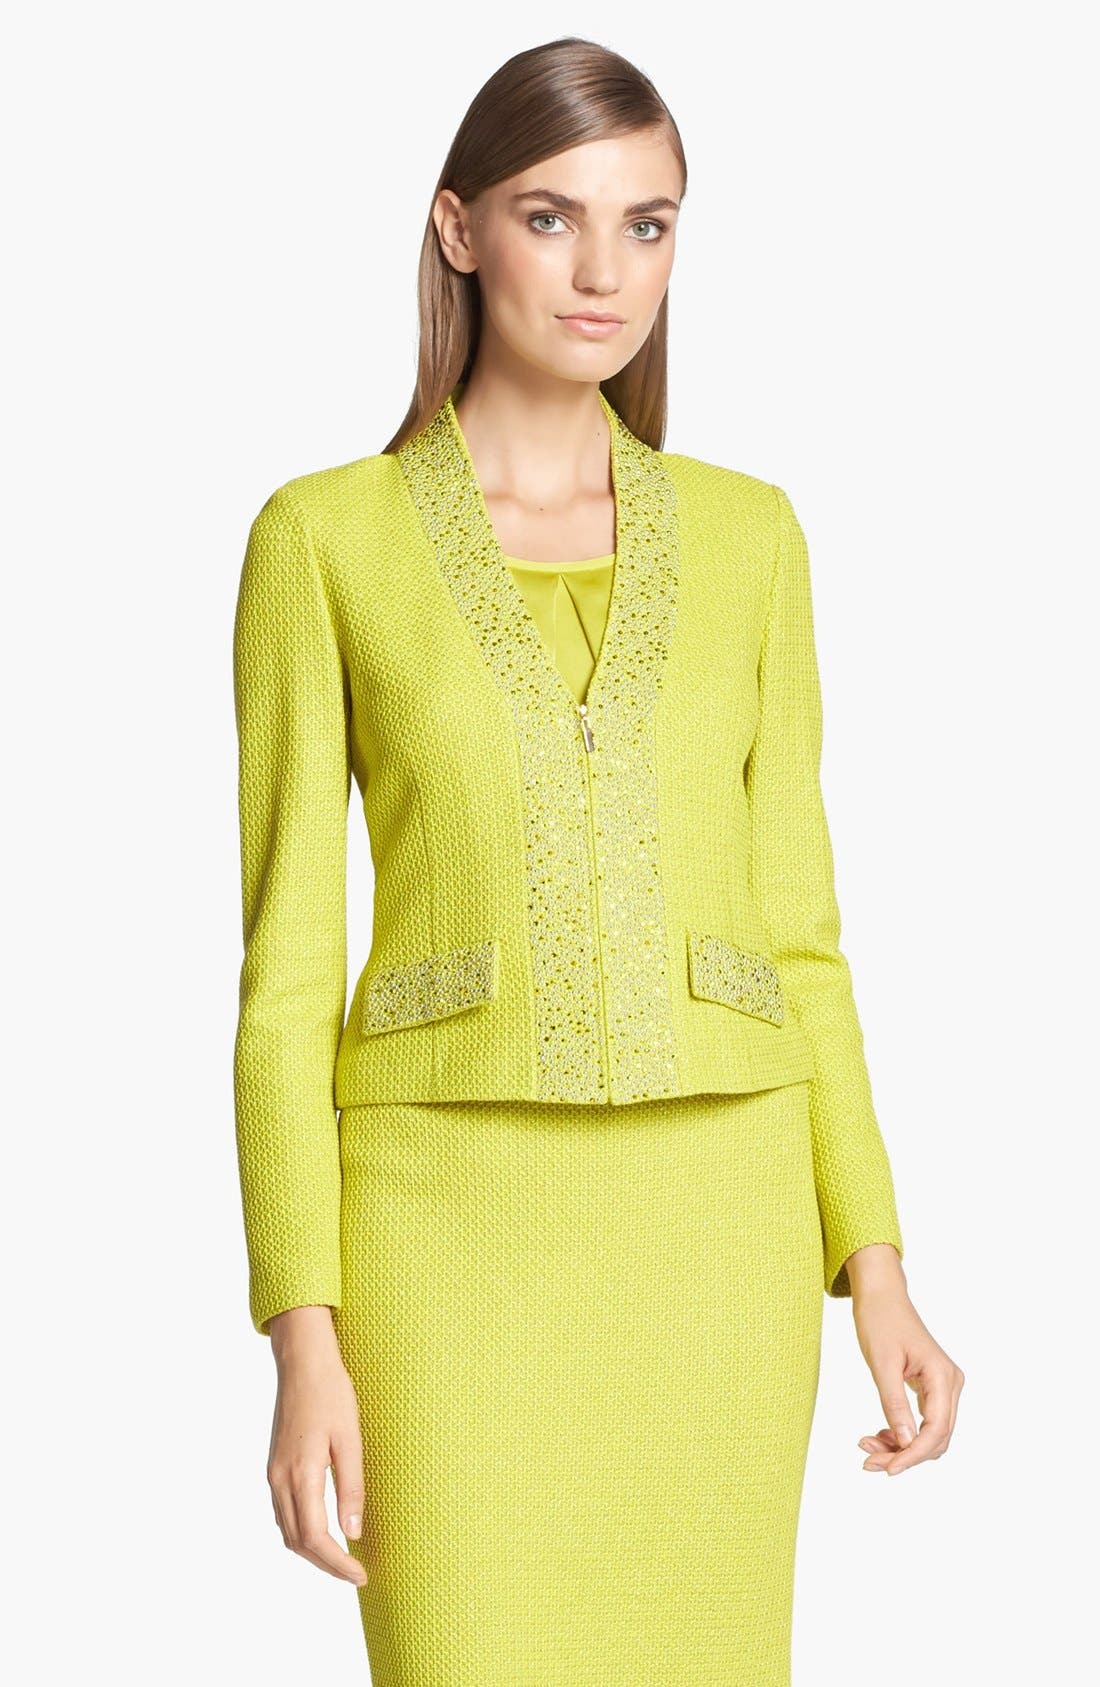 Alternate Image 1 Selected - St. John Collection Metallic Lattice Knit Jacket